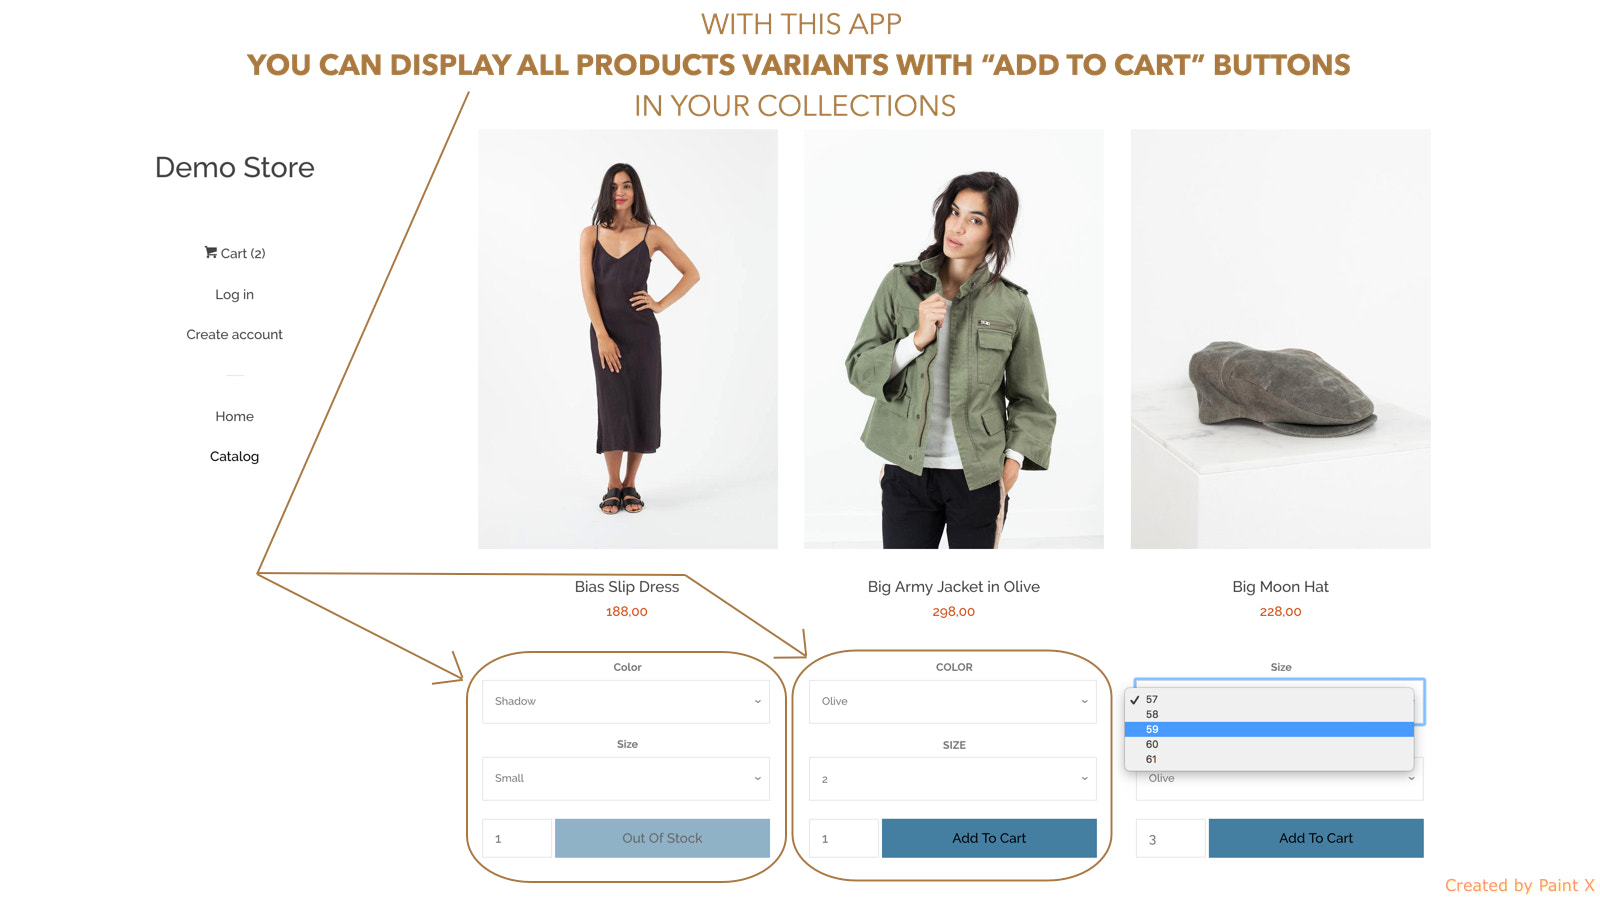 You can display variants for each product in collections